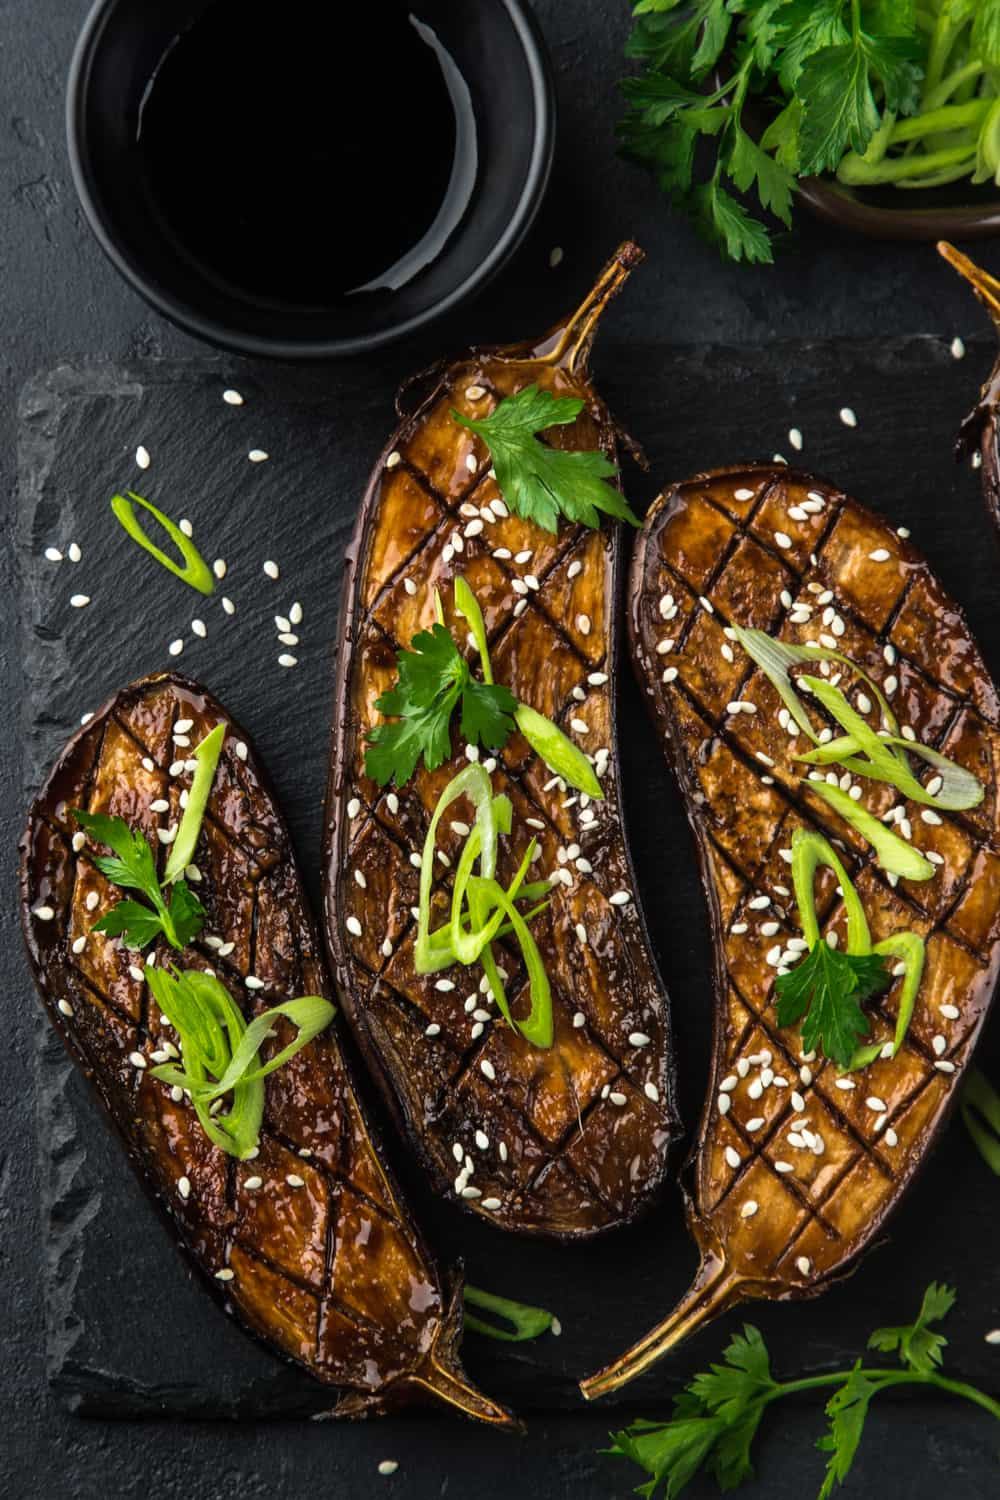 The risk of consuming an expired eggplant